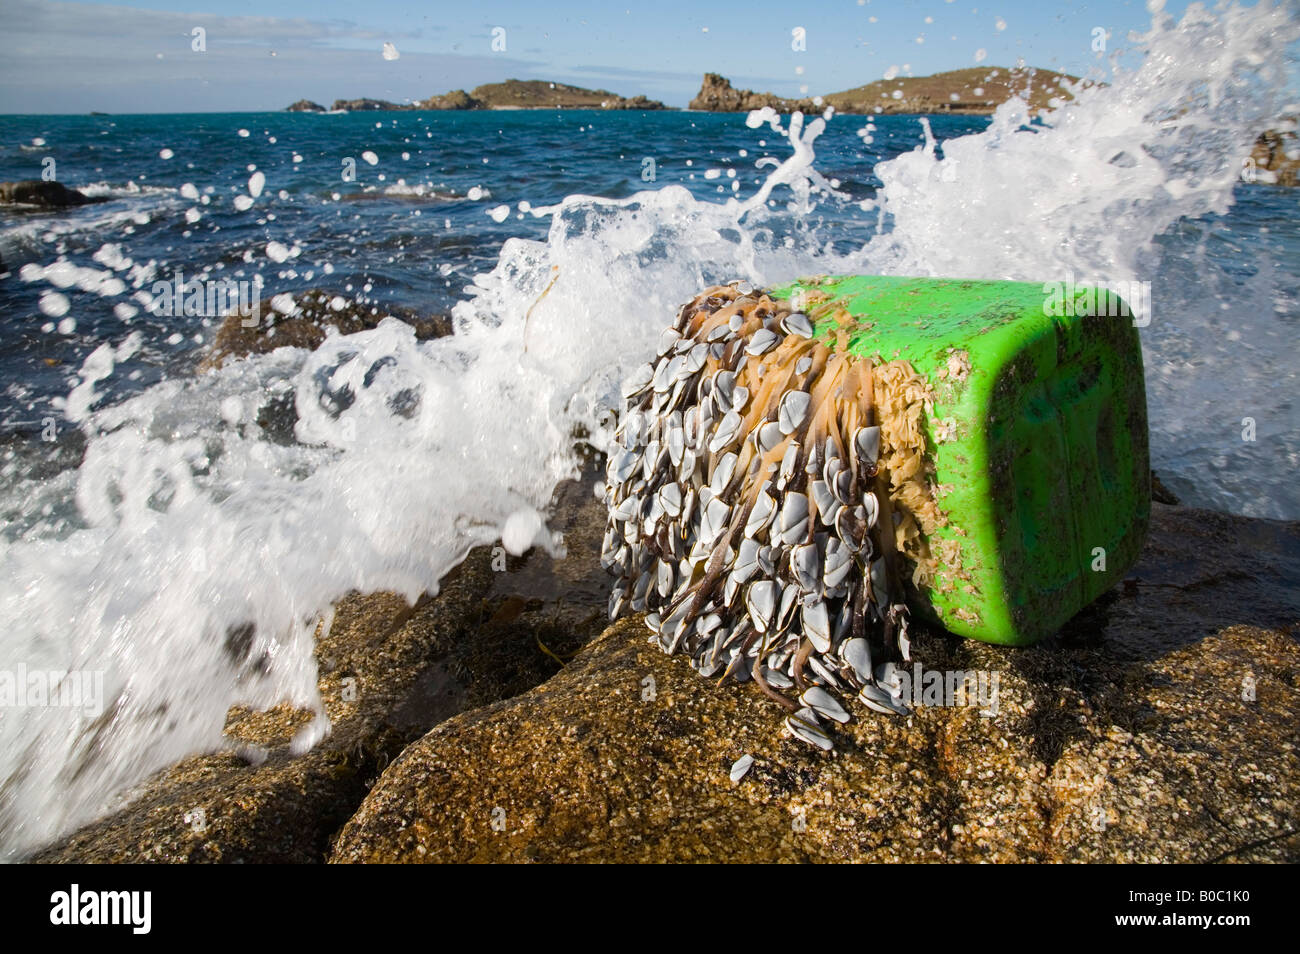 goose barnacles Lepas anatifera attached to debris and washed up on bryher isles of scilly - Stock Image